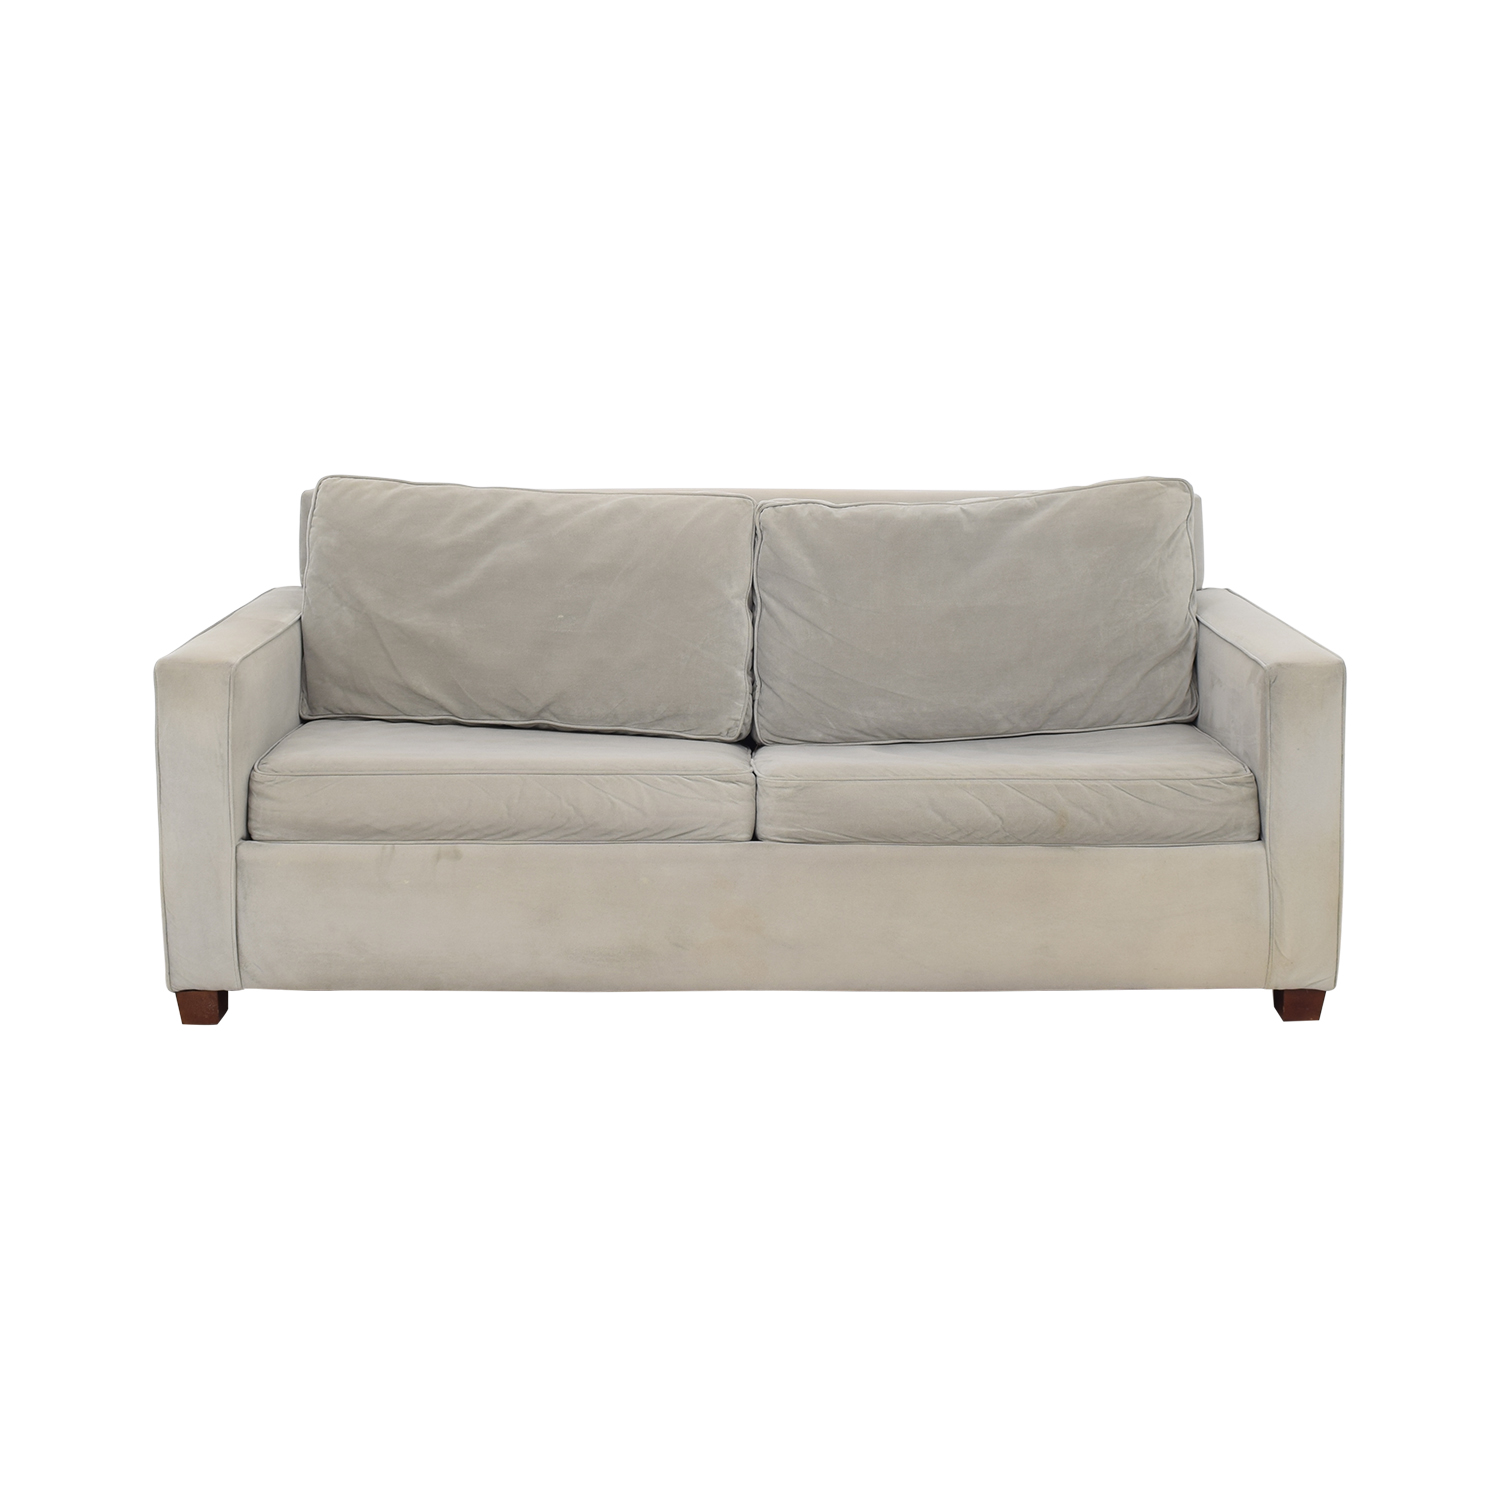 buy West Elm West Elm Henry Queen Sleeper Sofa online